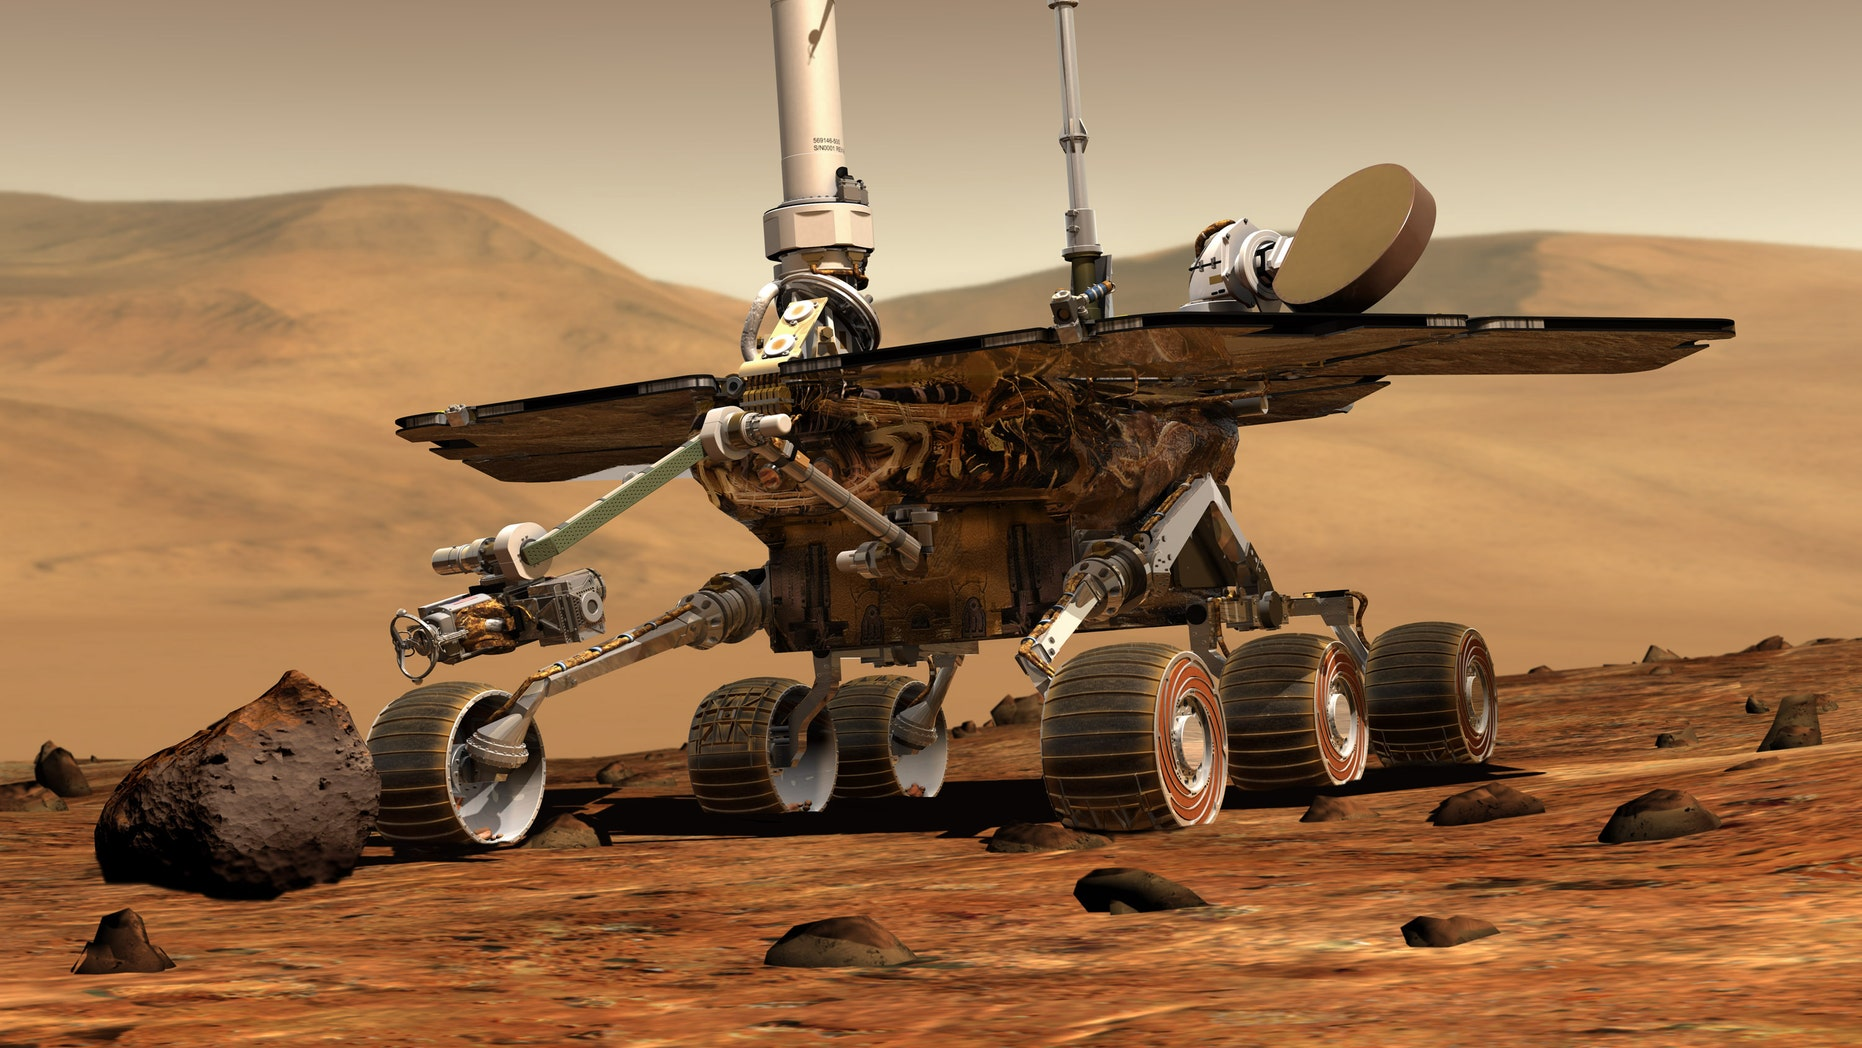 This artist rendering released by NASA shows the NASA rover Opportunity on the surface of Mars. Opportunity landed on the red planet on Jan. 24, 2004 and is still exploring. Its twin Spirit stopped communicating in 2010.